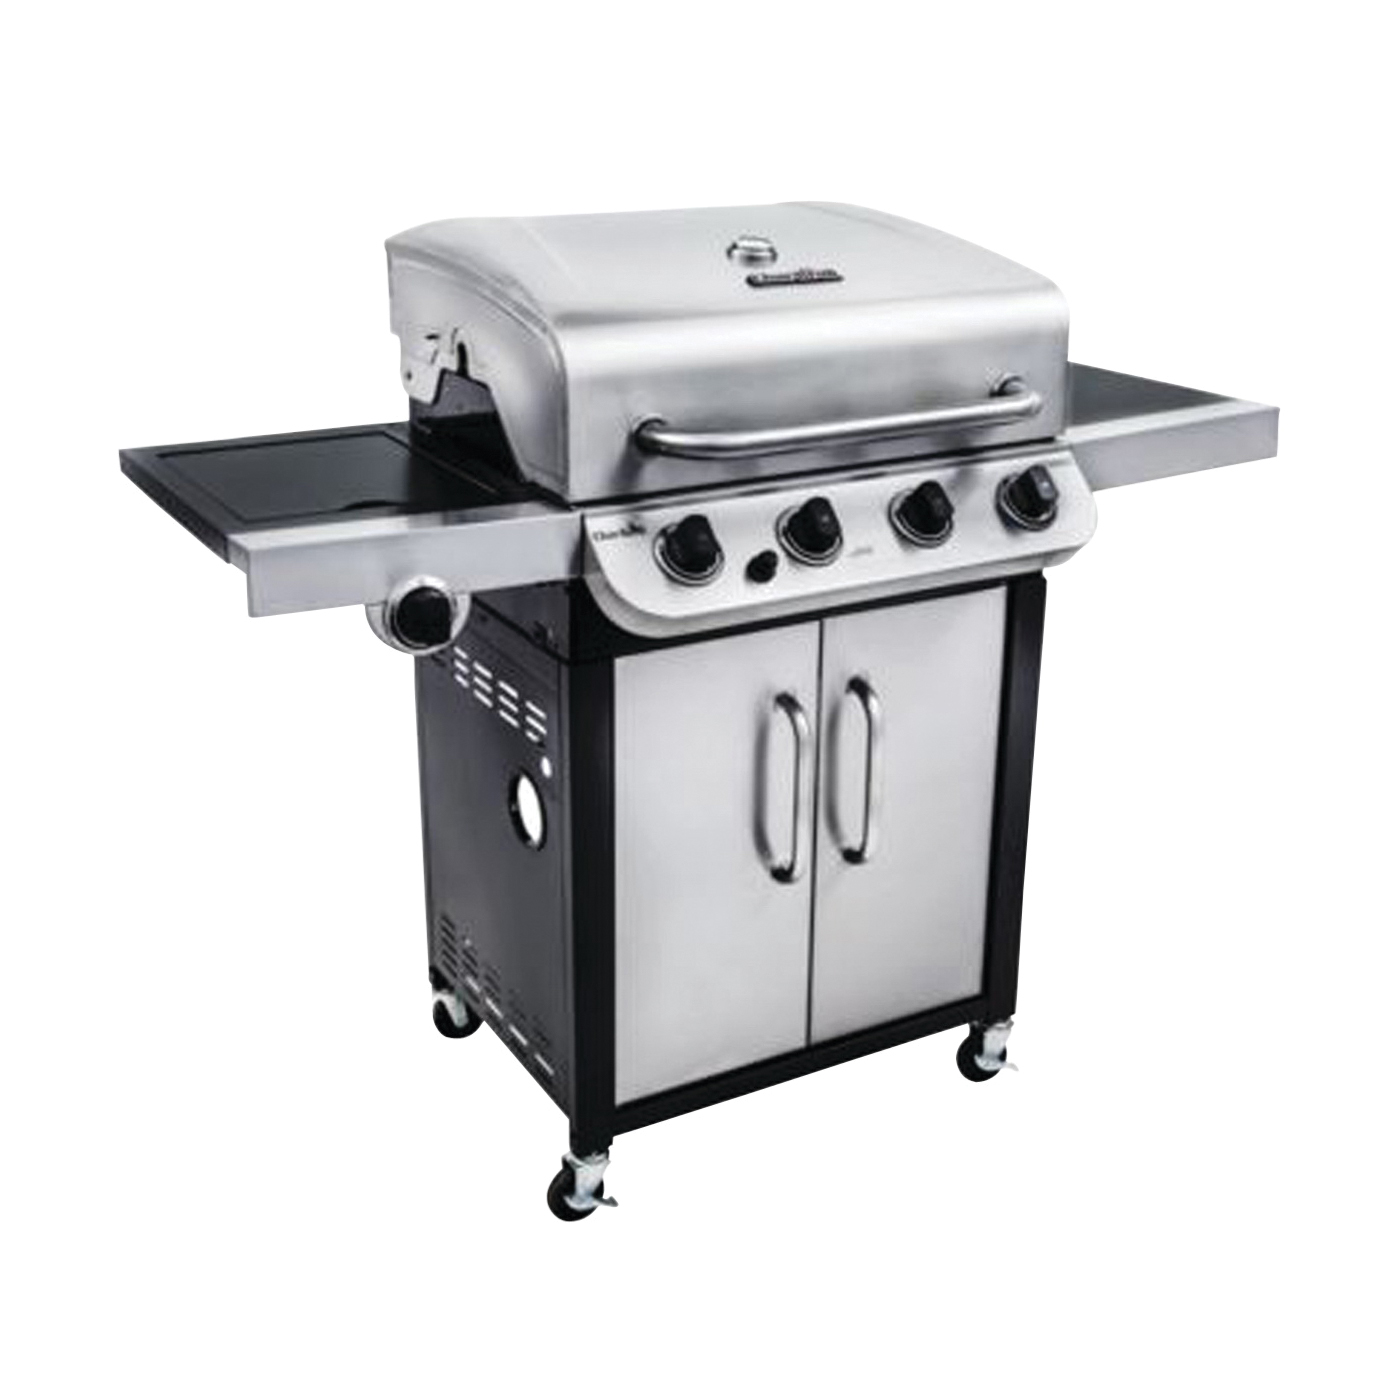 Picture of Char-Broil Performance Series 463377017 Gas Grill, 36000 Btu BTU, 4 -Burner, 475 sq-in Primary Cooking Surface